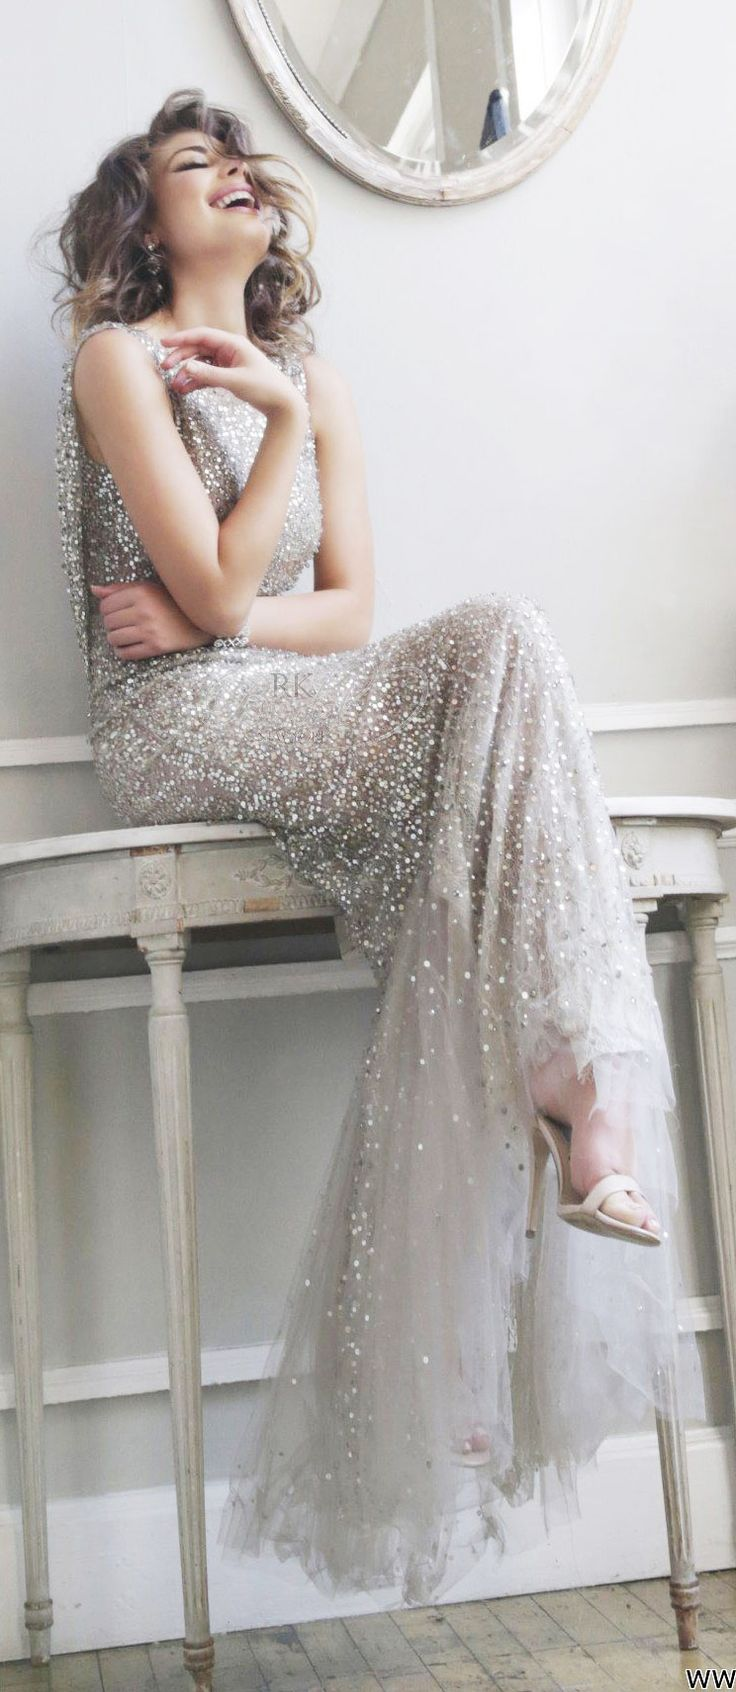 TheDecoHaus is the most classic and splendid collection of 1920's Gatsby, Flapper style Dresses and Gowns at most affordable price.